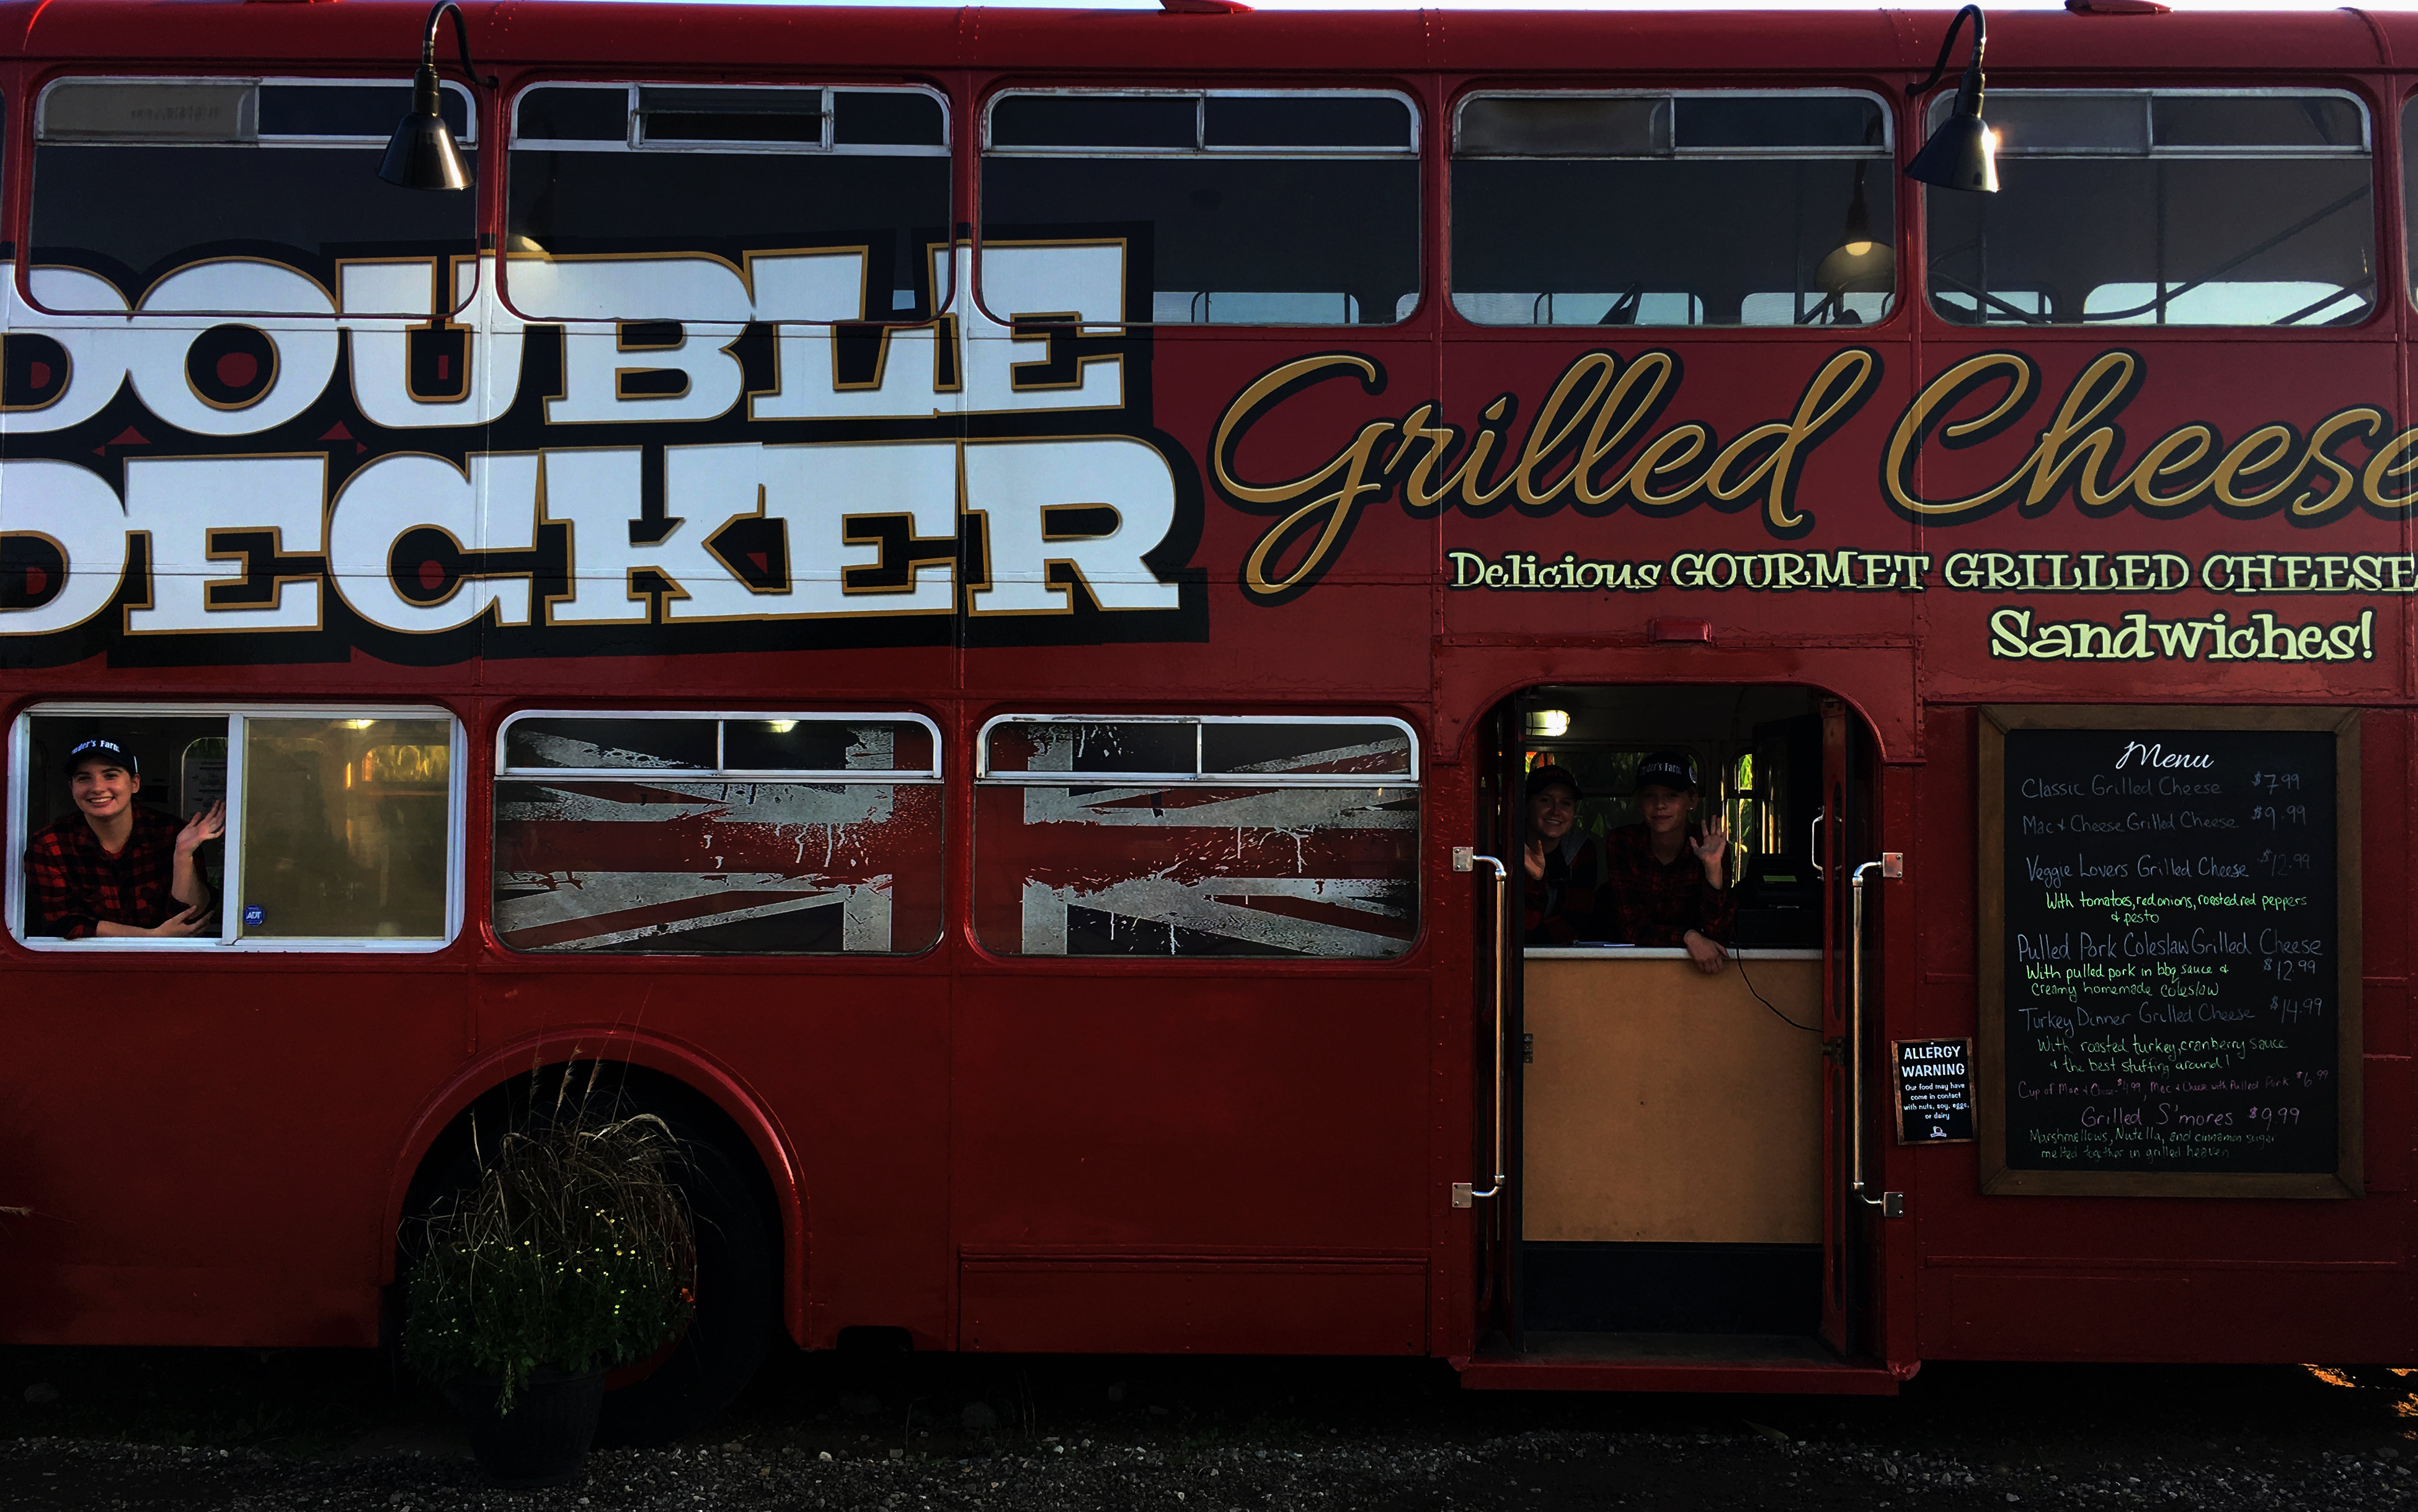 double decker edited